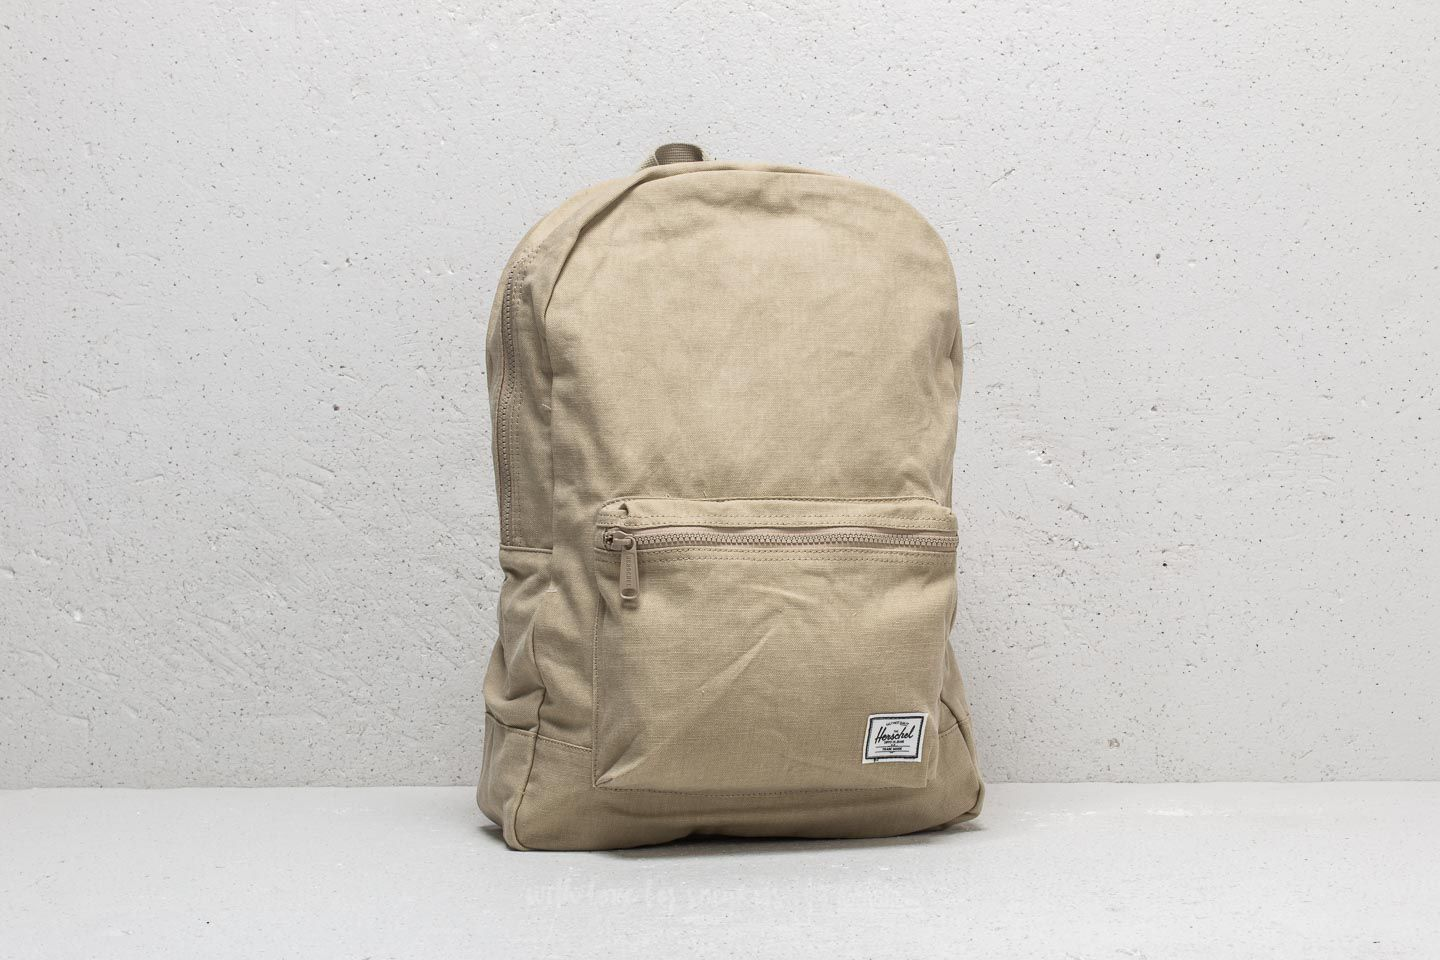 Herschel Supply Co. Daypack Backpack Eucalyptus